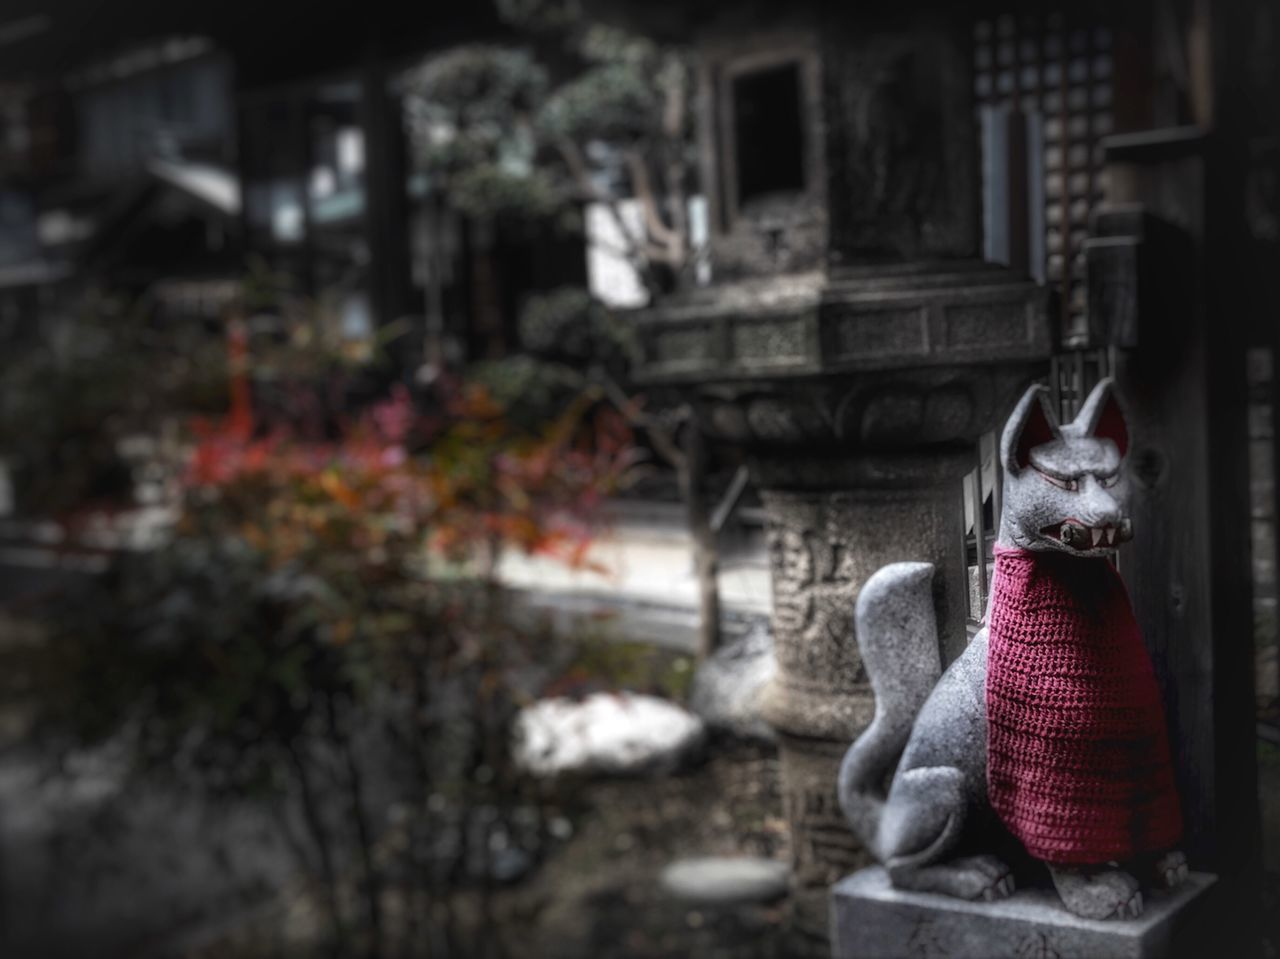 No People Focus On Foreground Outdoors Day Statue Building Exterior Pets Animal Themes Close-up Mammal Japan Matsuyam Jinjya Oinarisan